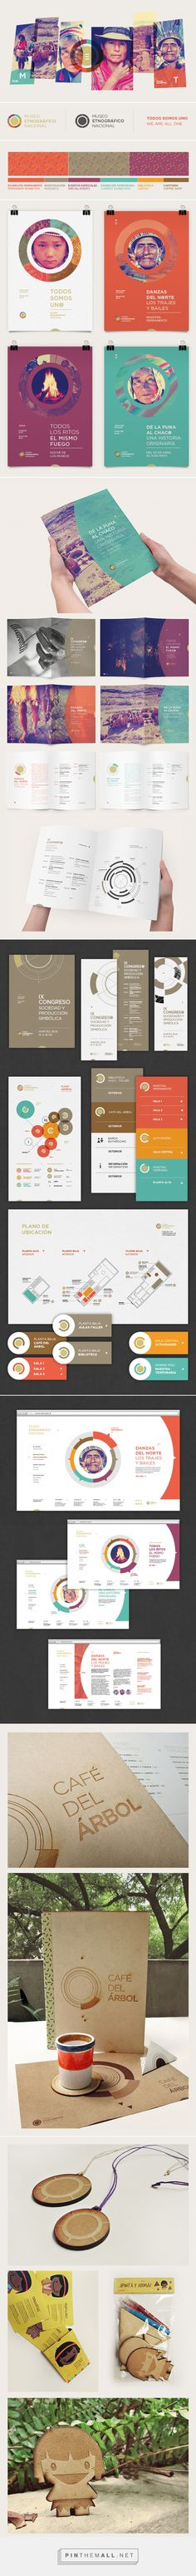 Etnographic Museum on Branding Served - created via http://pinthemall.net